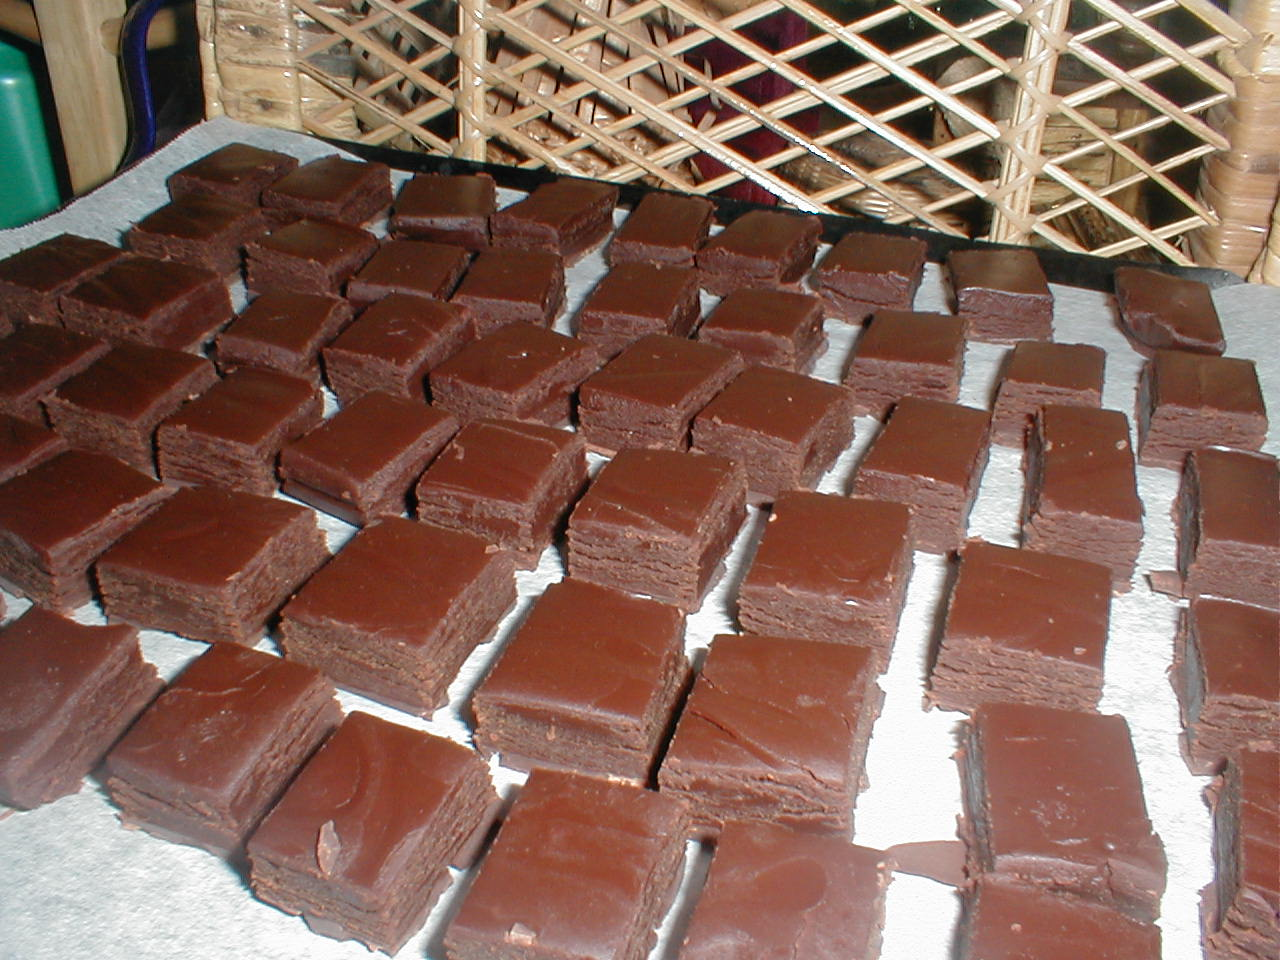 Grand Marnier truffles drying, prior to enrobing and decorating.